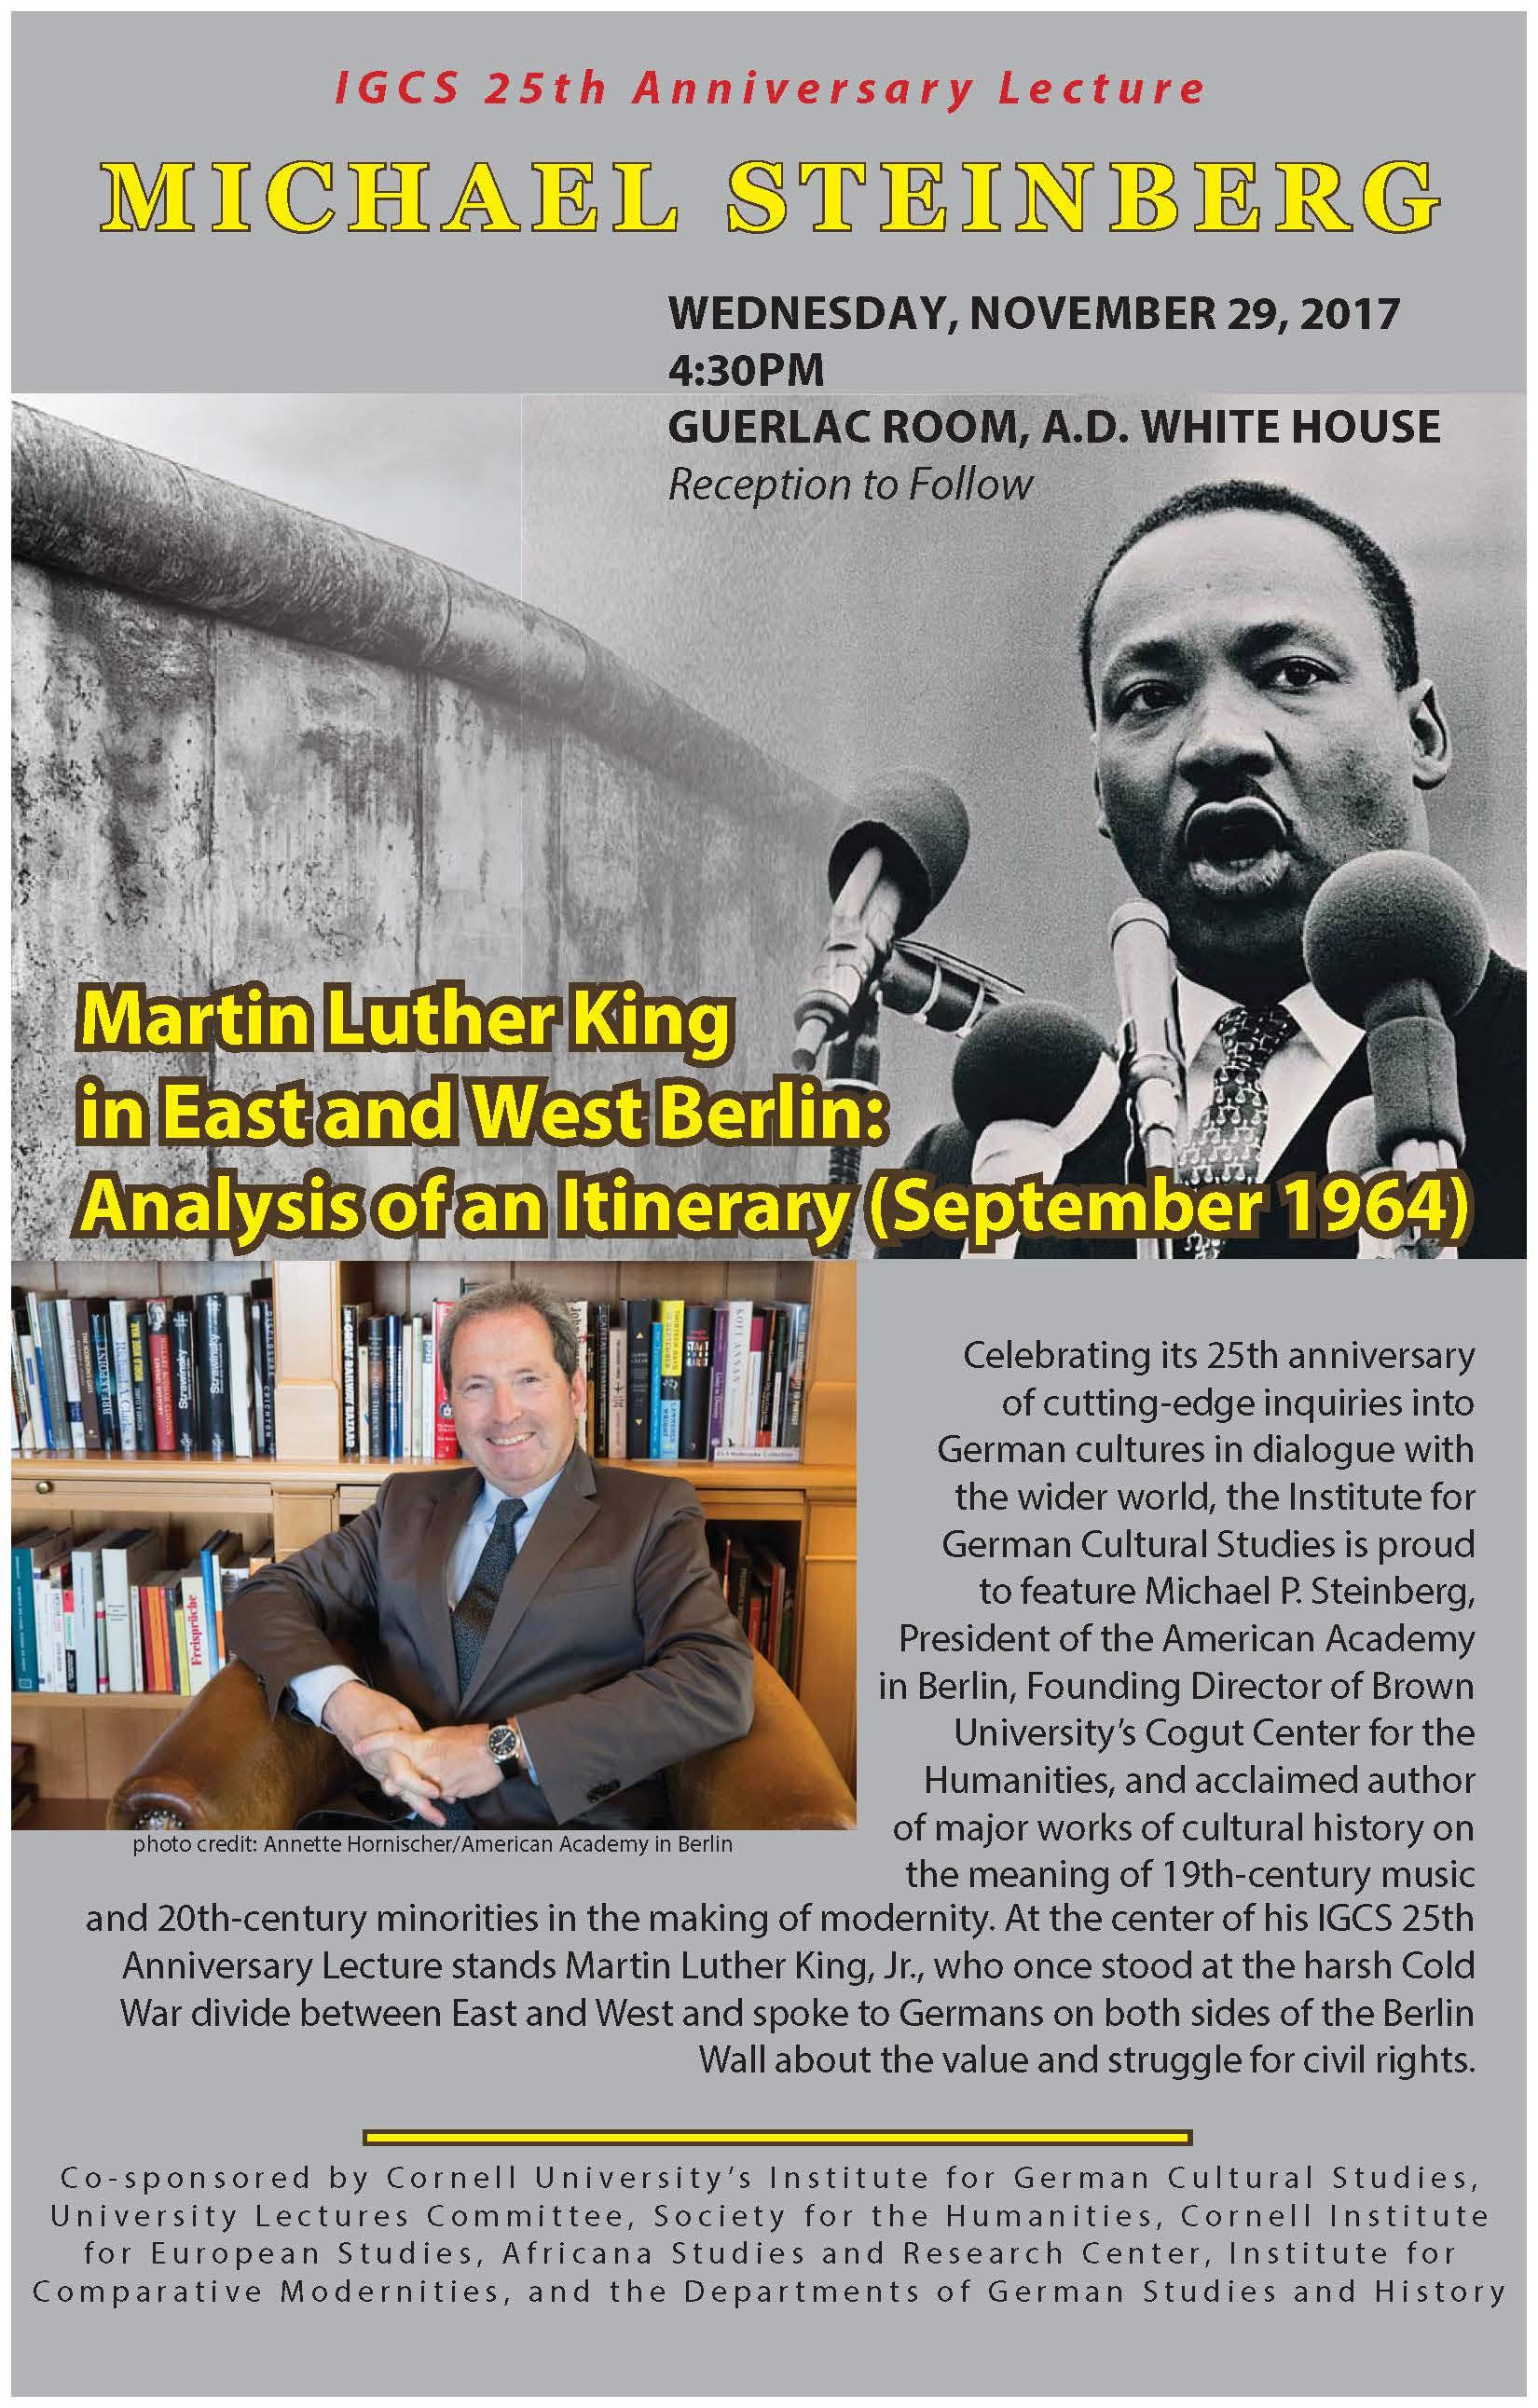 Martin Luther King in East and West Berlin: Analysis of an